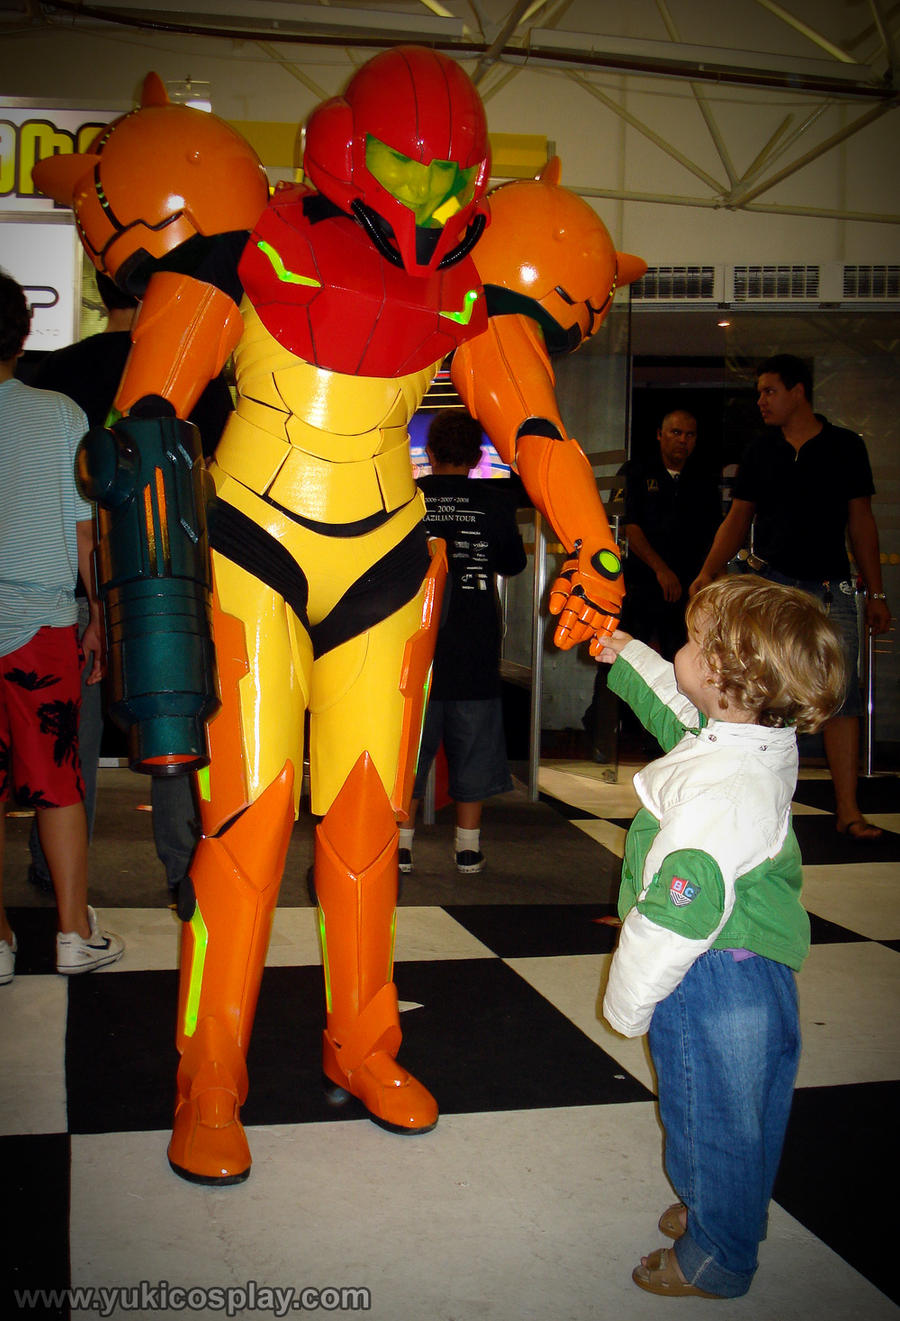 Samus and the child